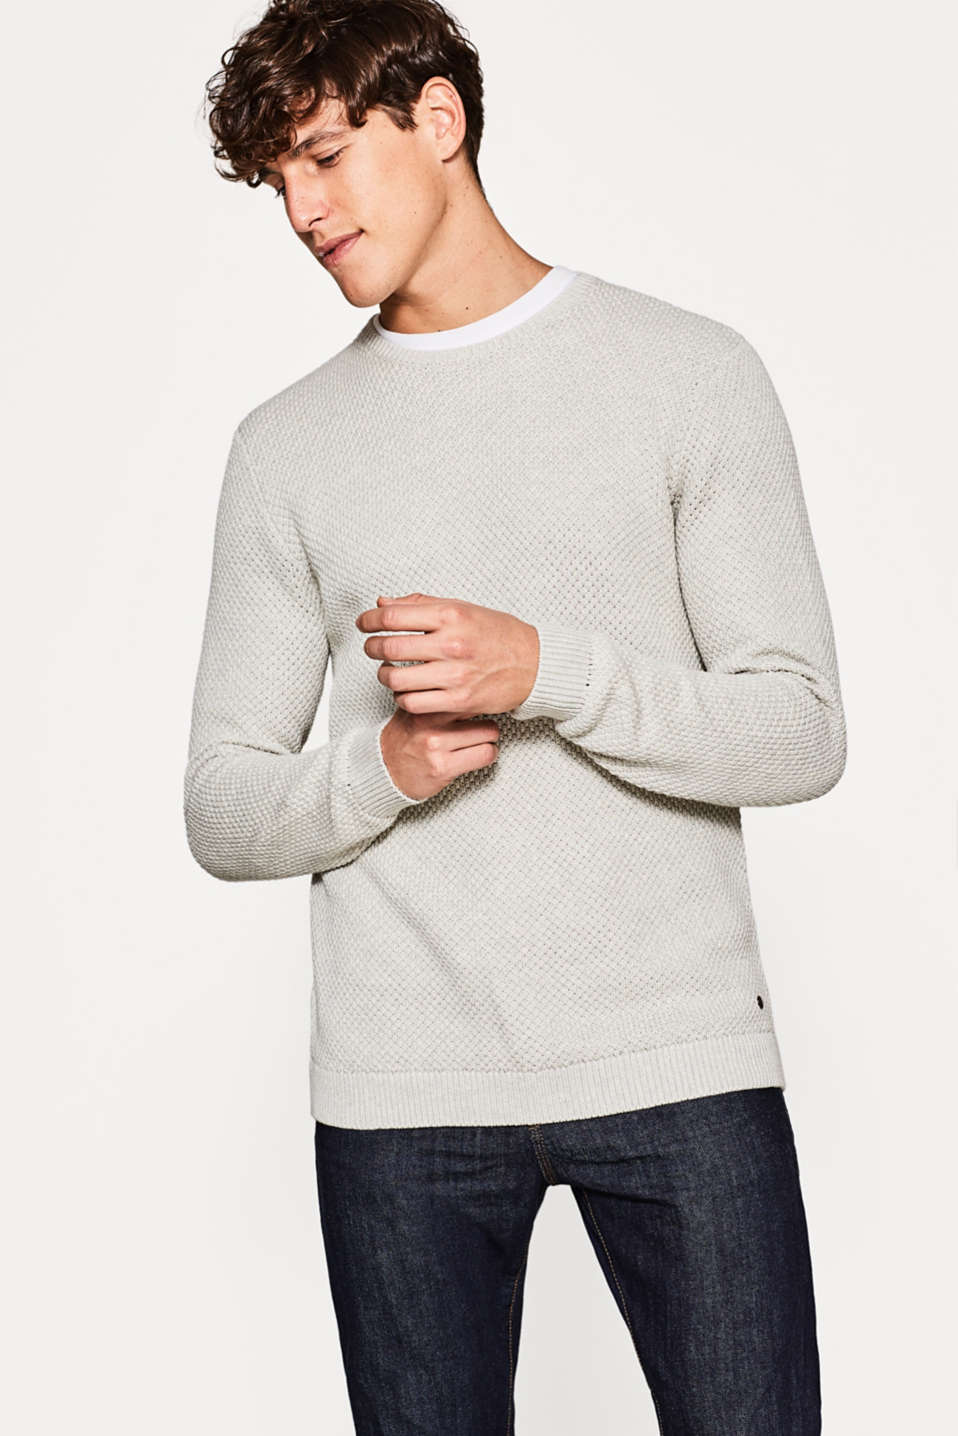 Esprit - Textured knit jumper, cotton